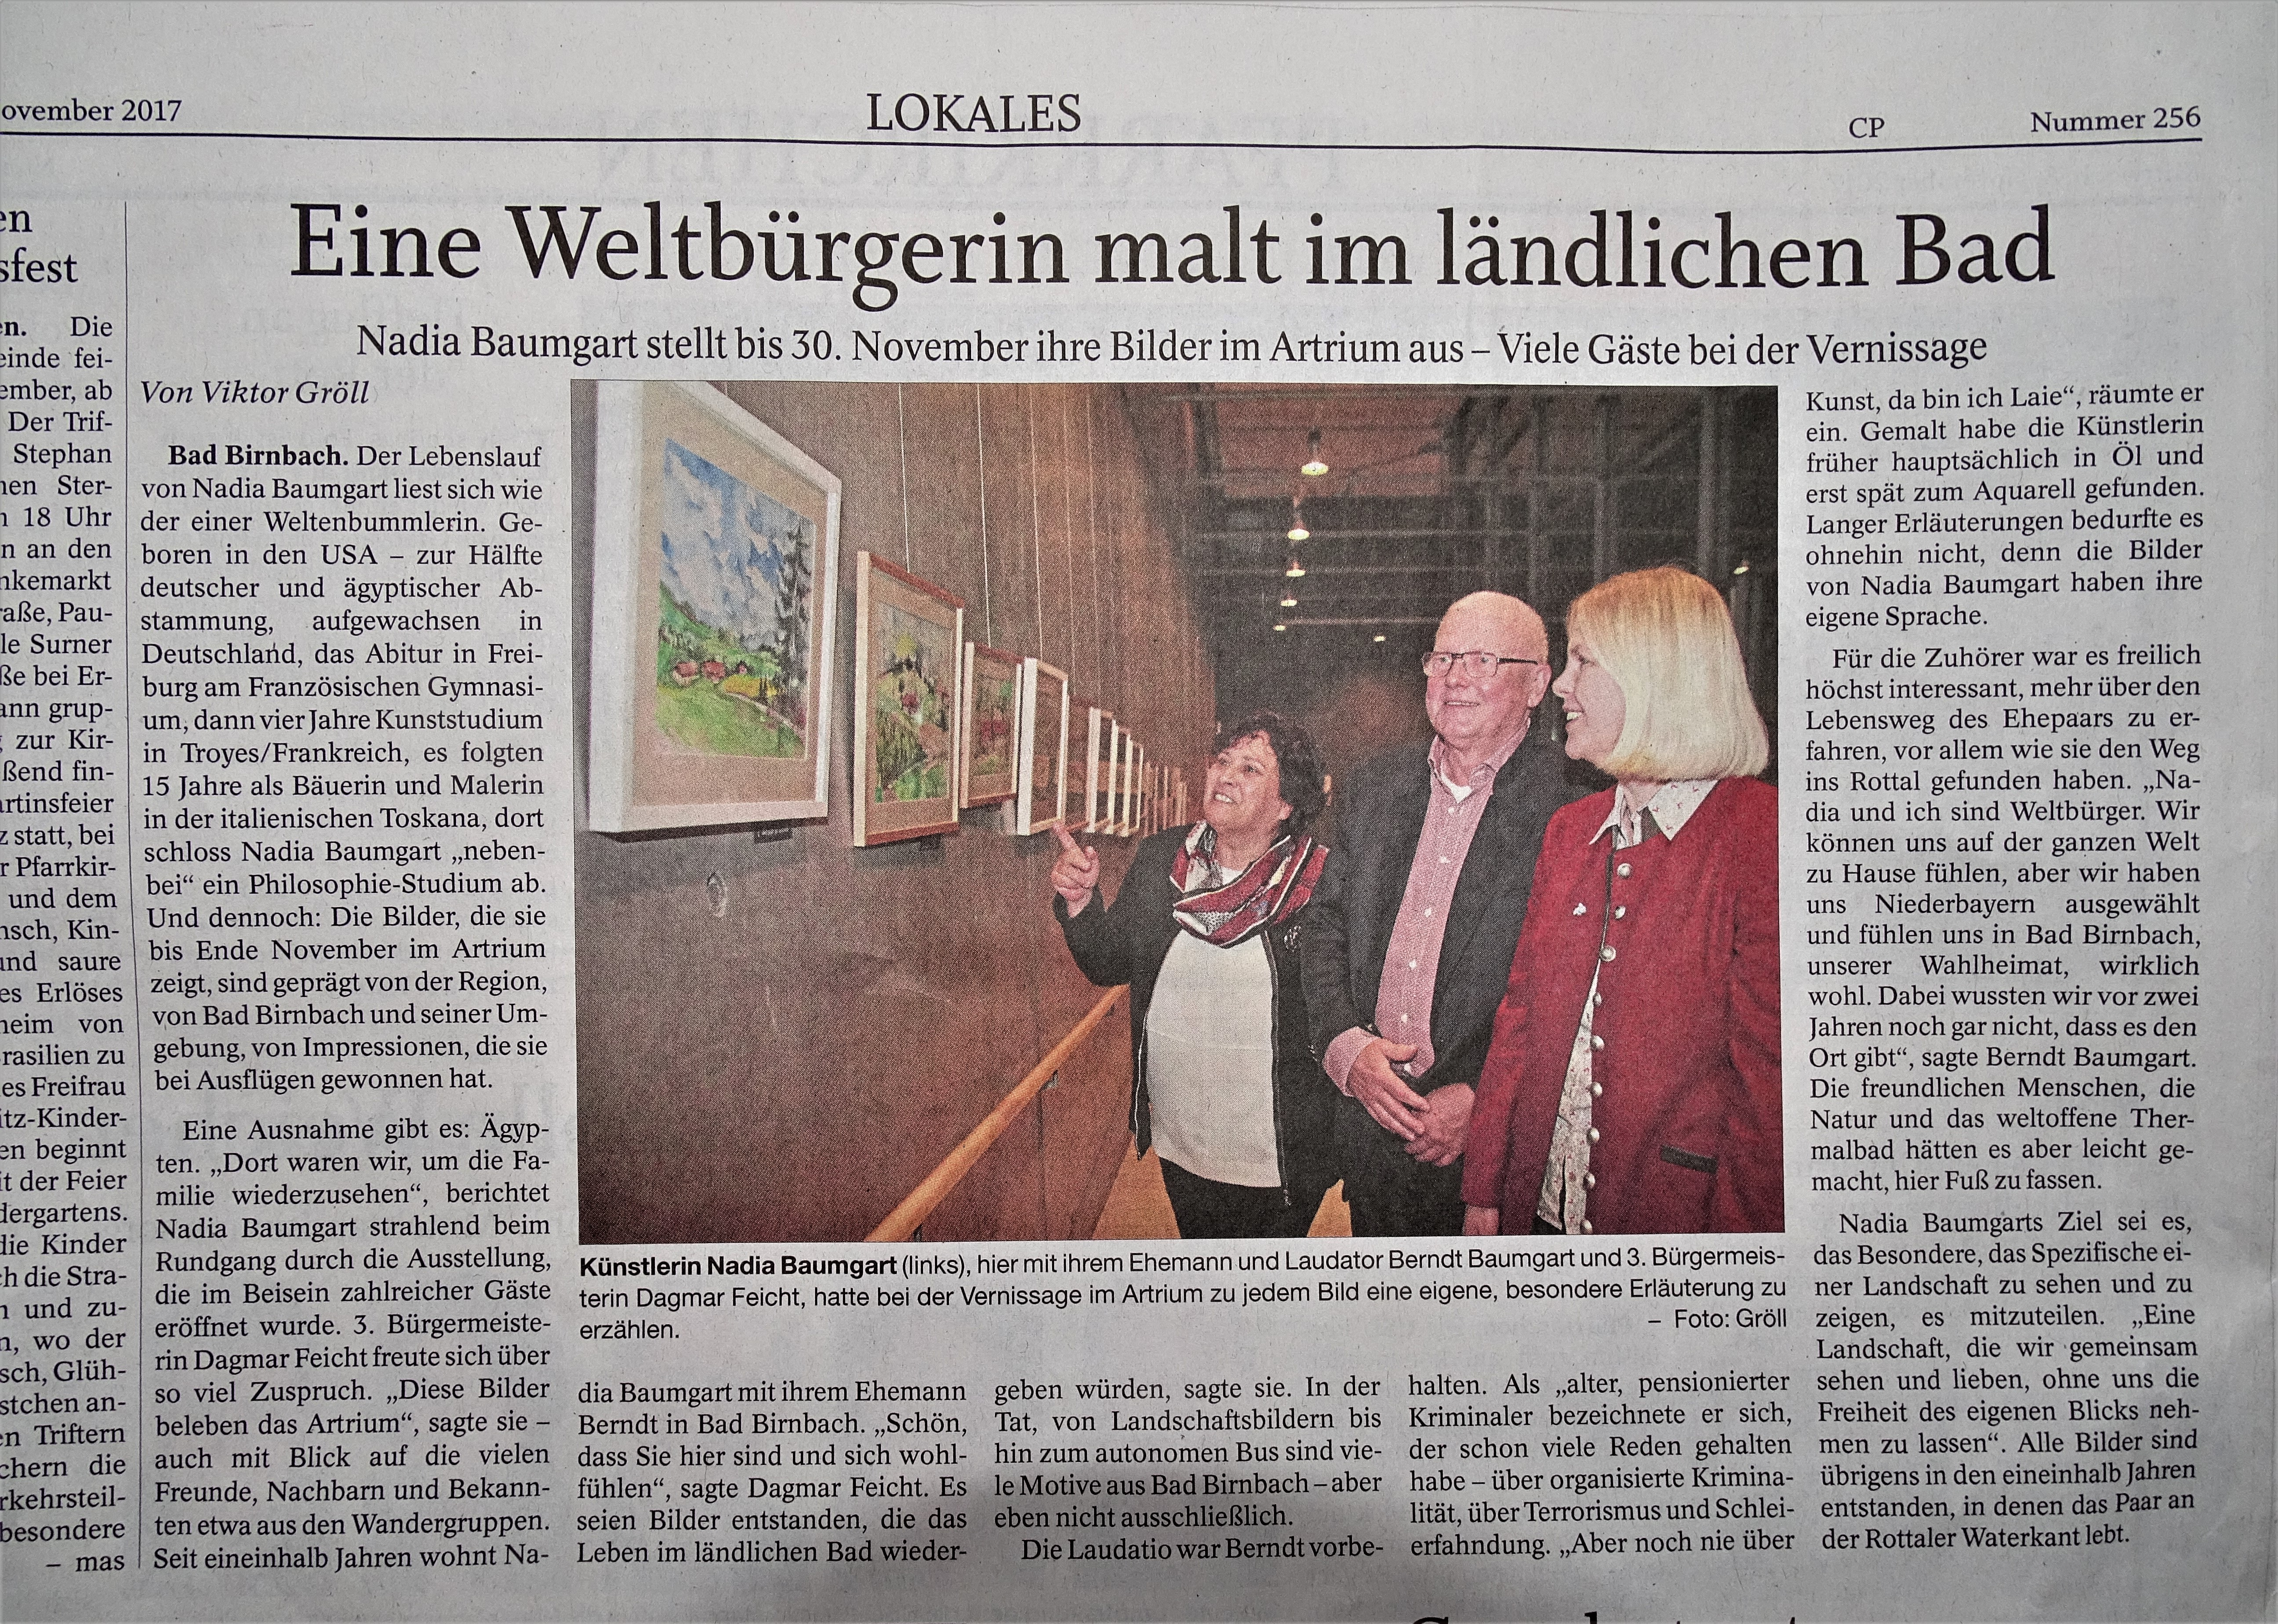 3-Artikel-PNP-Bad-Birnbach-Vernissage-Artrium-Nadia-Baumgart-22-November-2017